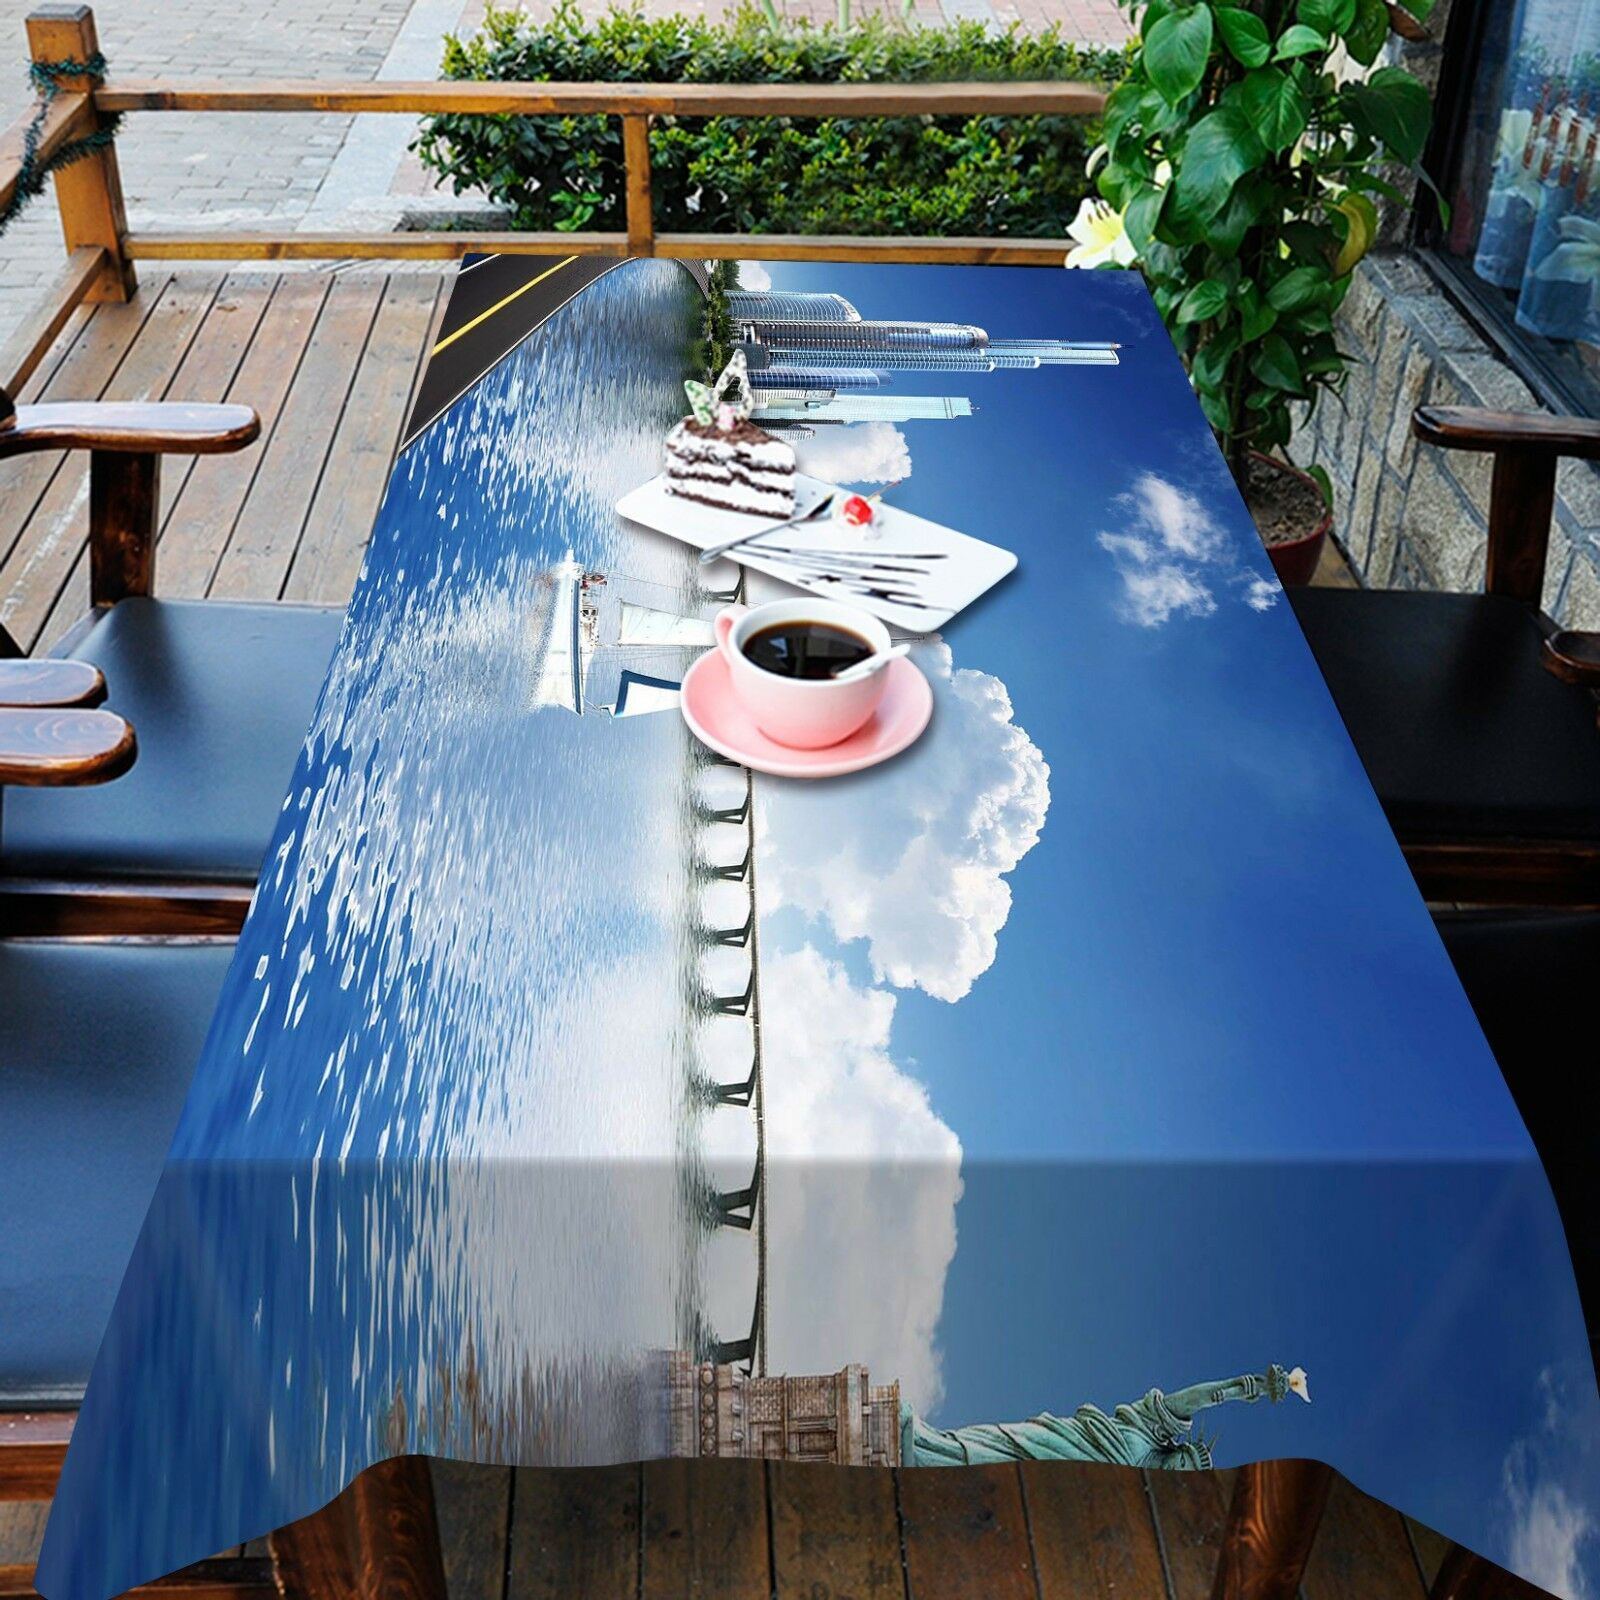 3D City River9 Tablecloth Table Cover Cloth Birthday Party Event AJ WALLPAPER AU